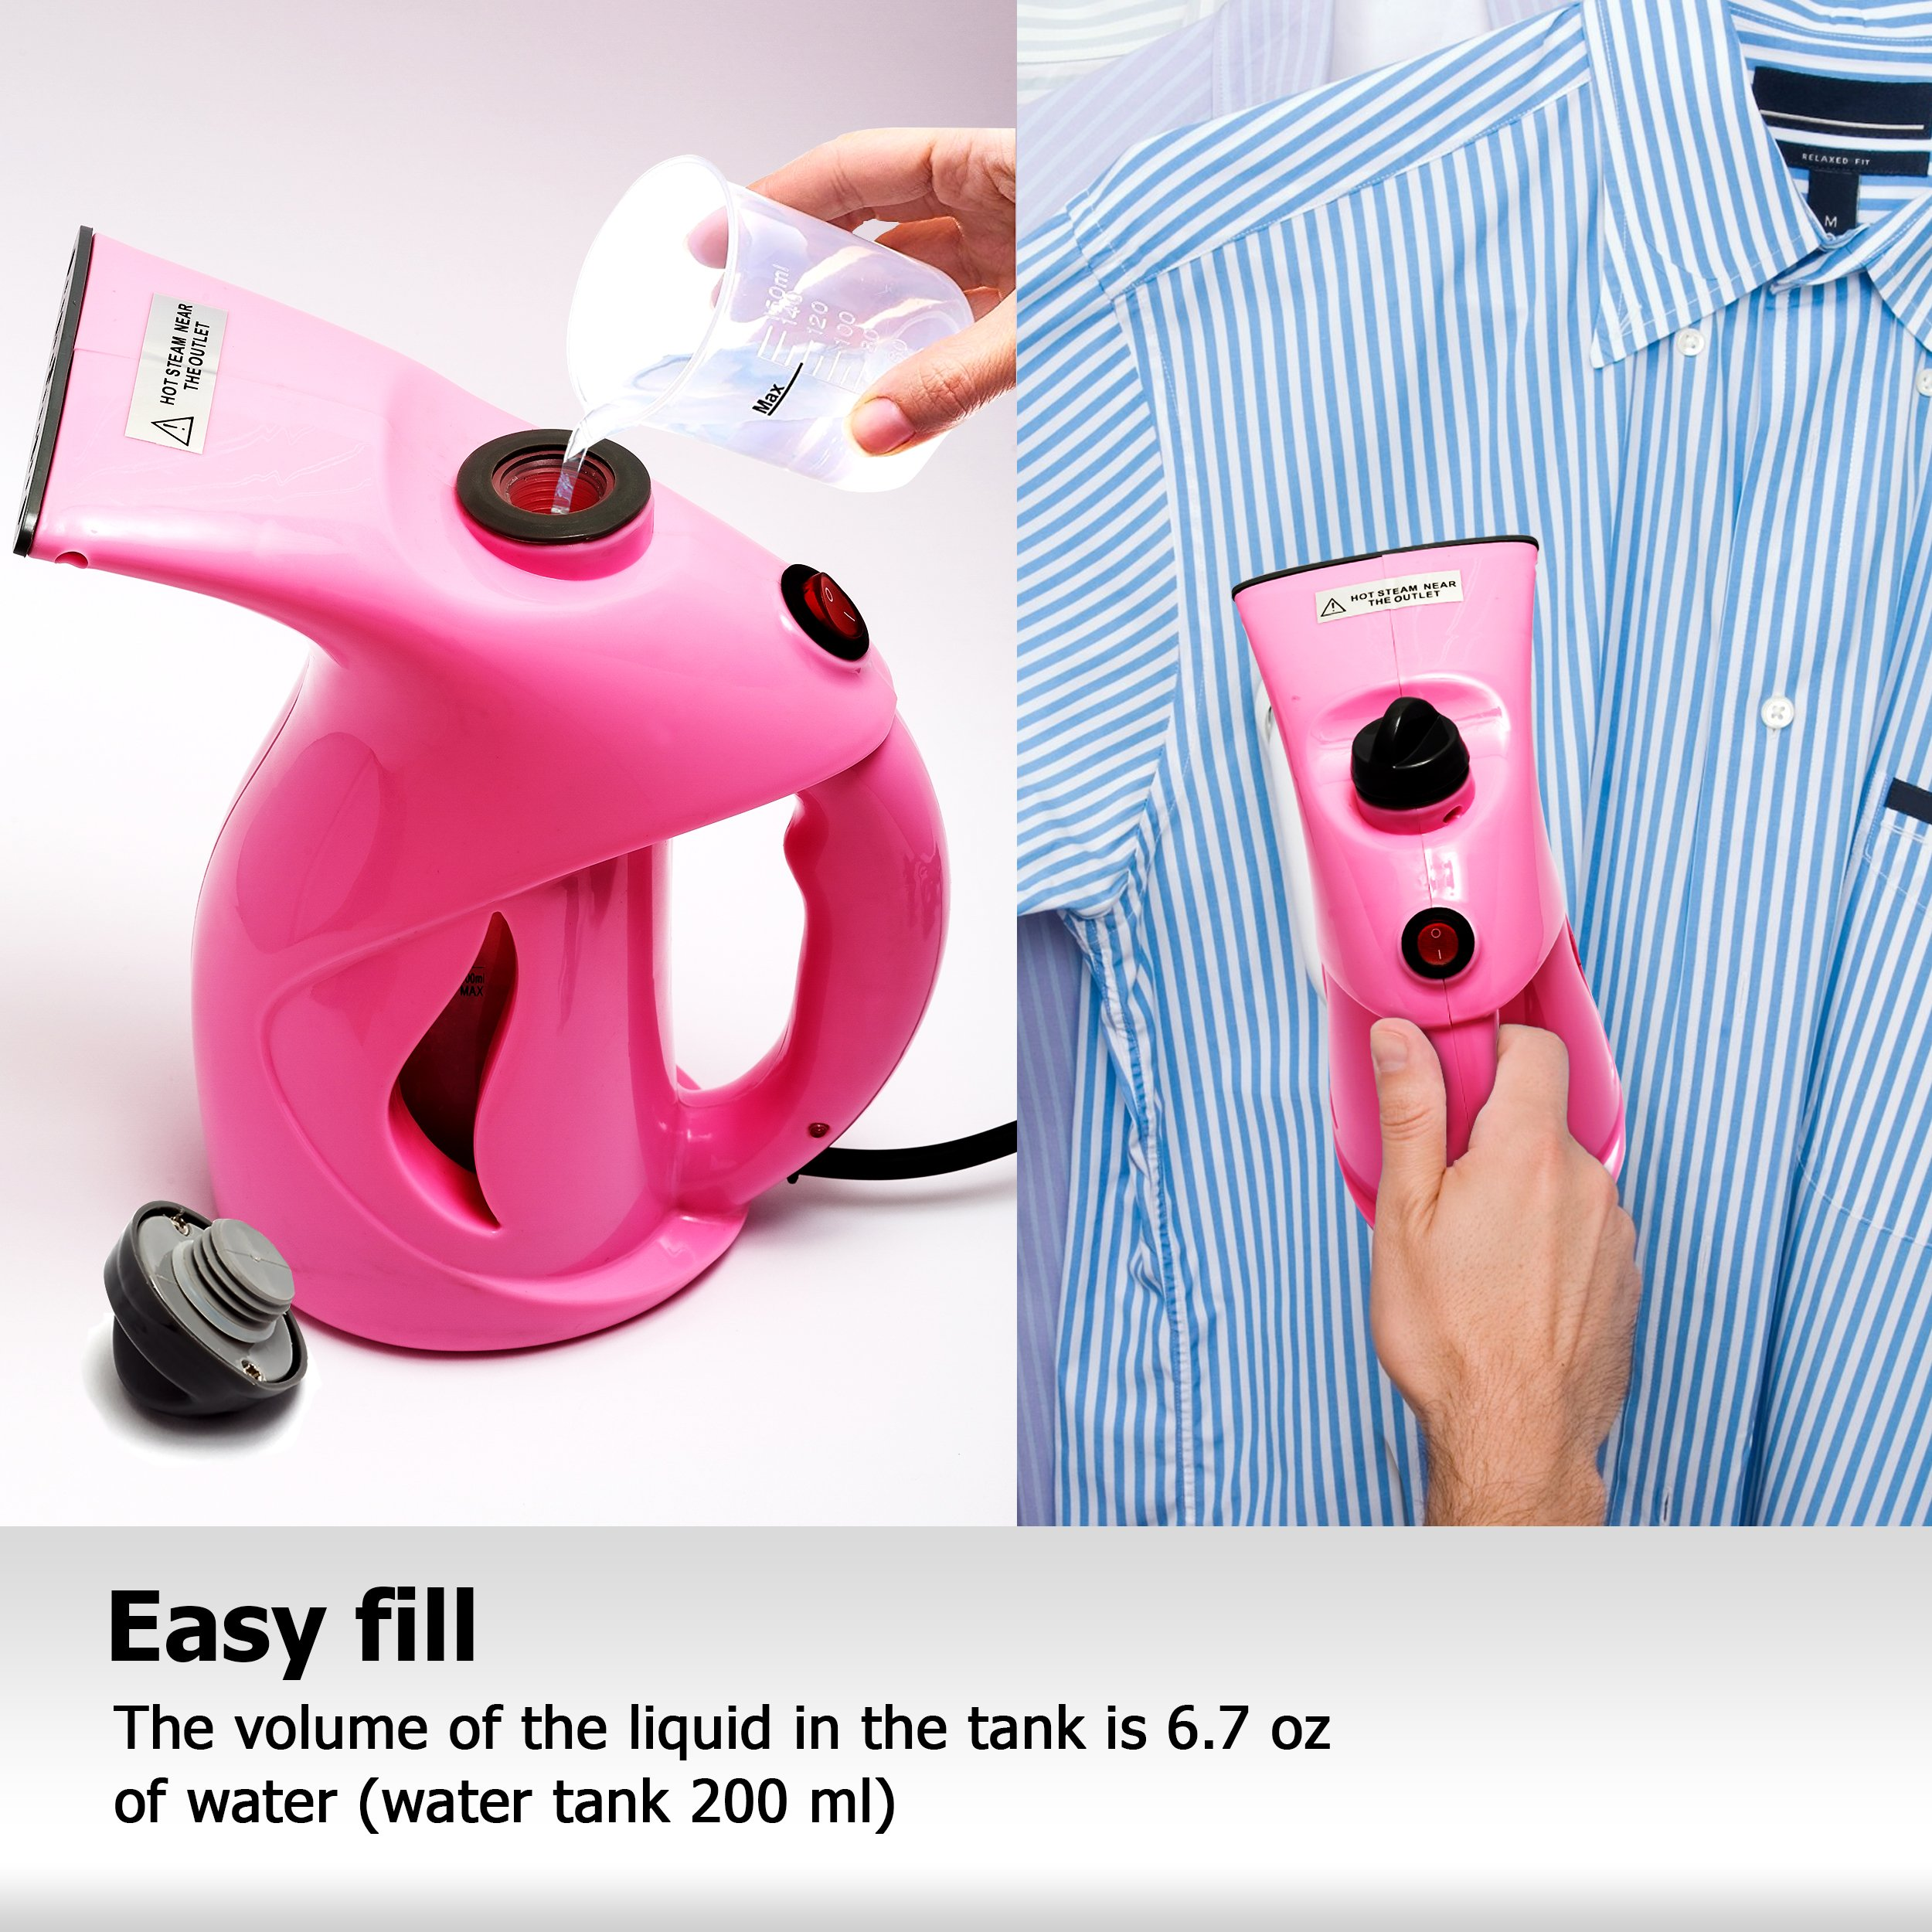 Business100 Portable Steamer, 200ML Portable Garment Steamer, Steamer for Clothes, Heat-up Premium Fabric Steam Cleaner, Safe, Lightweight & Perfect Clothing Steamer for Travel Home by Business100 (Image #6)